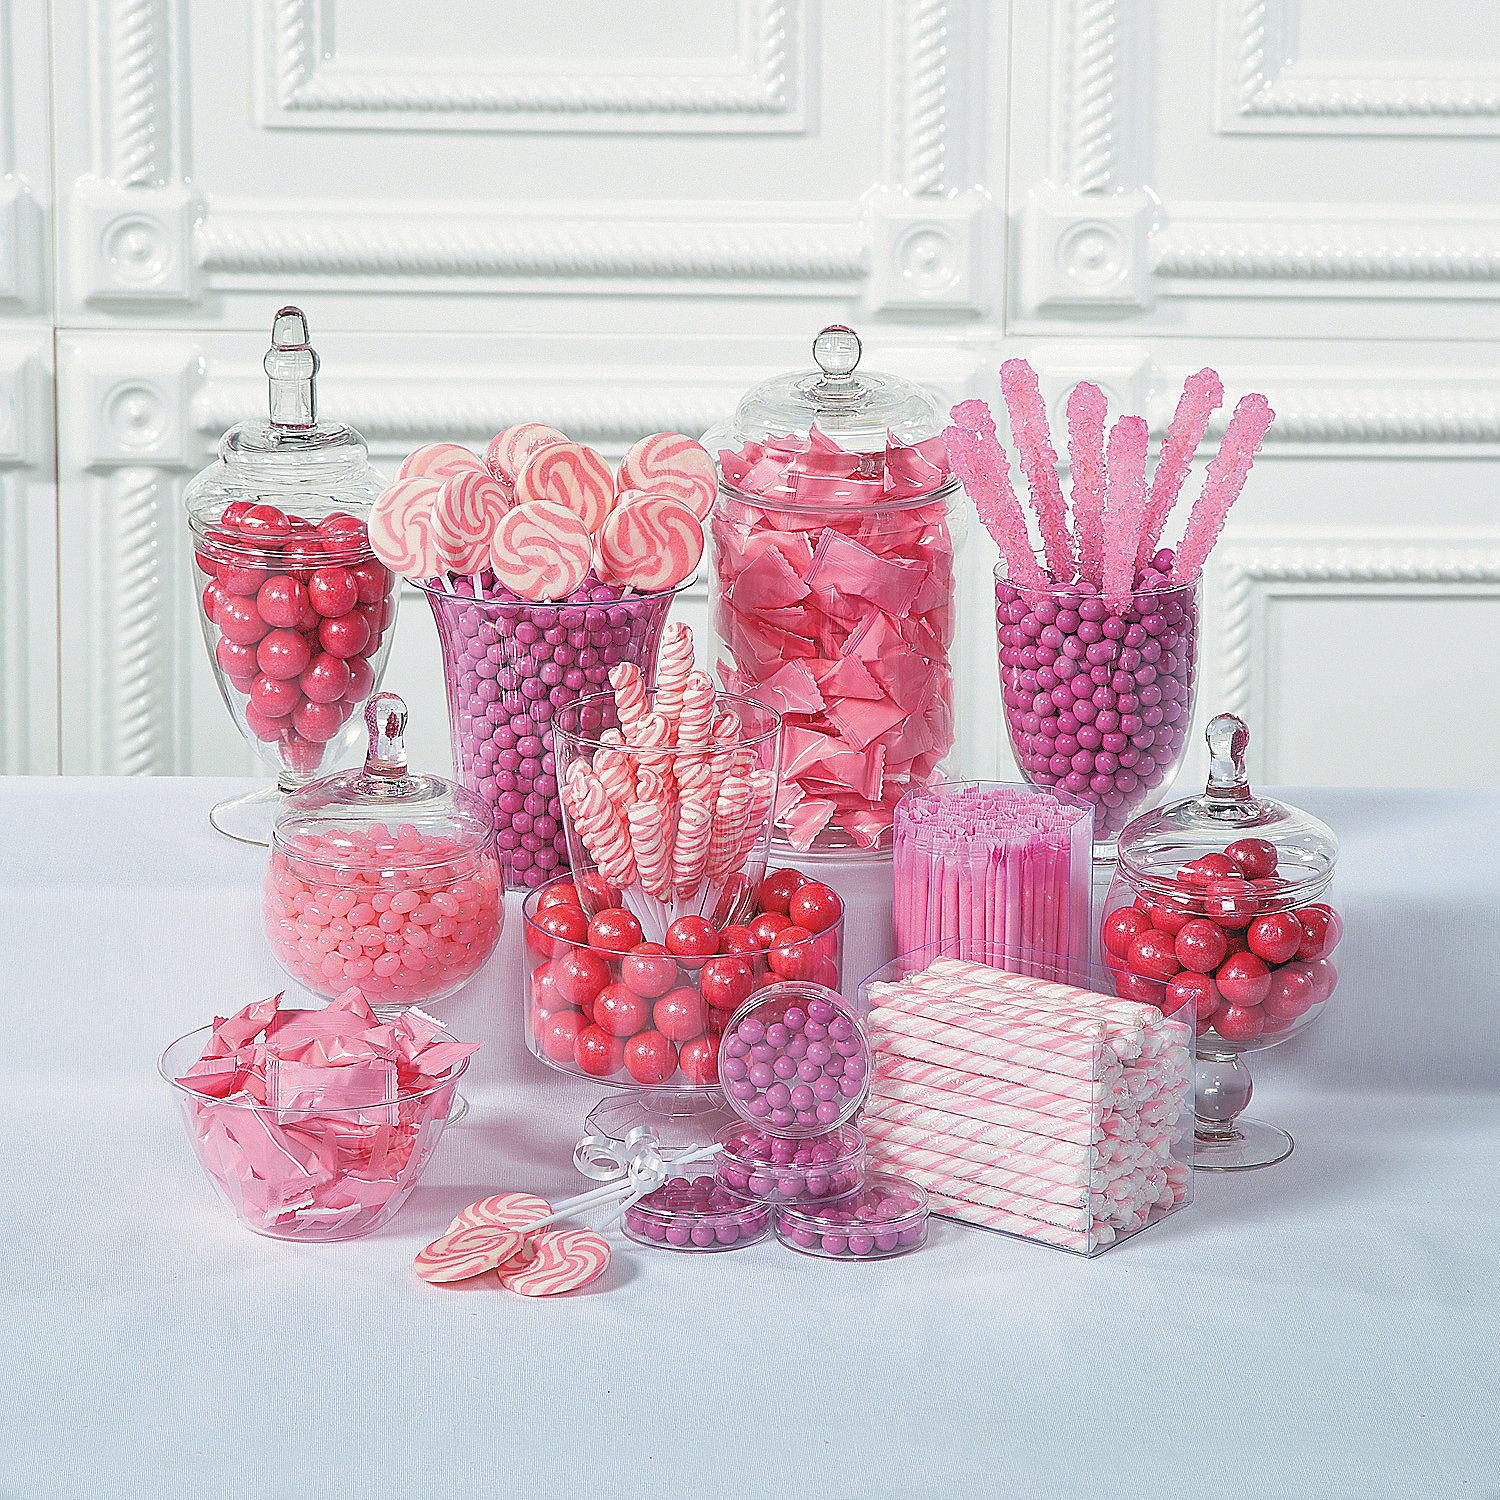 Complement Pink Wedding Decorations With Candy Buffet Ideas From Our Huge Selection Of And Supplies